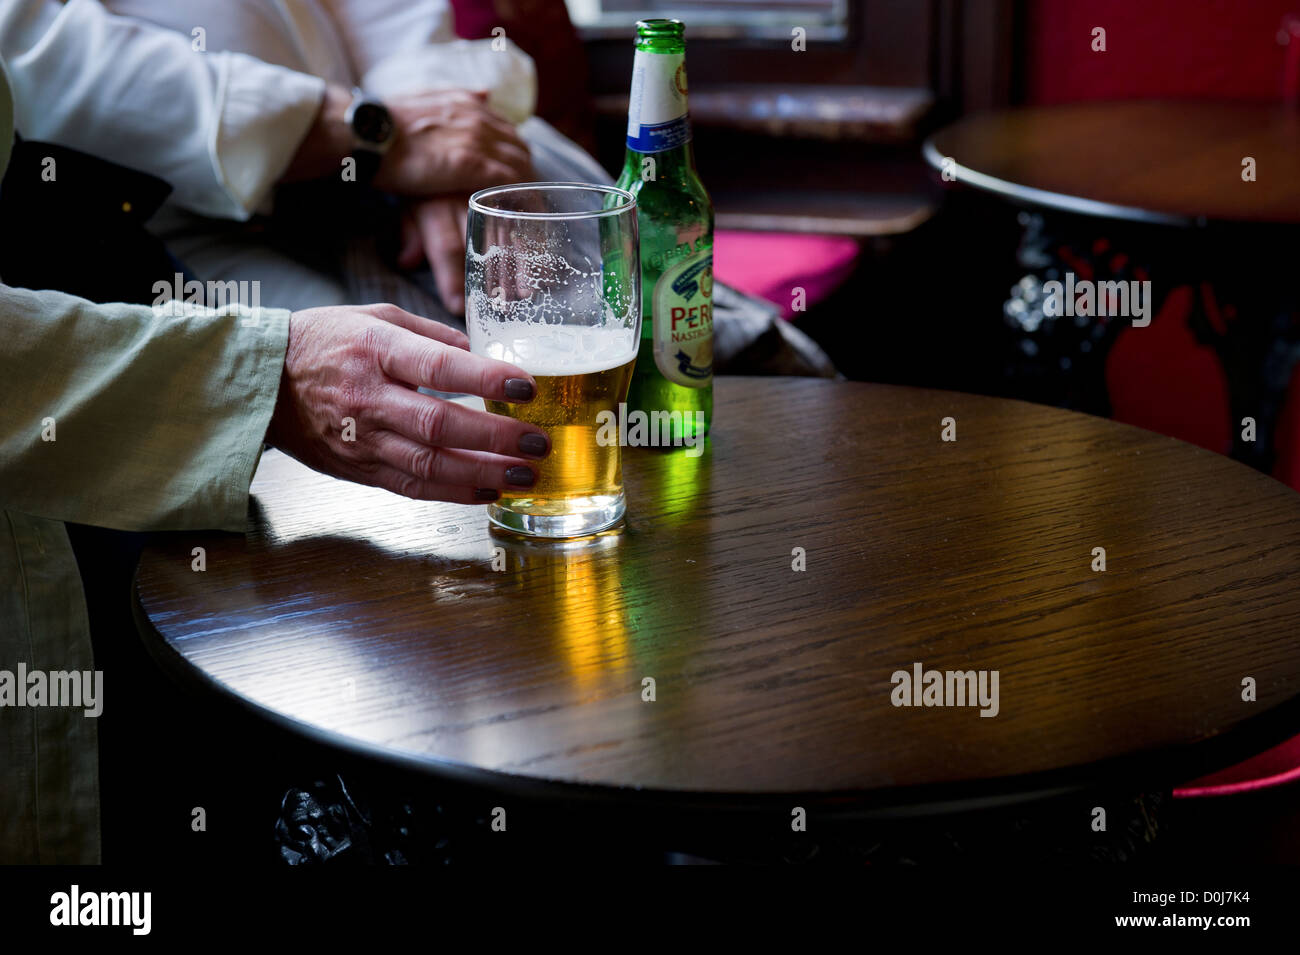 A hand reaching for a pint glass in a pub. - Stock Image